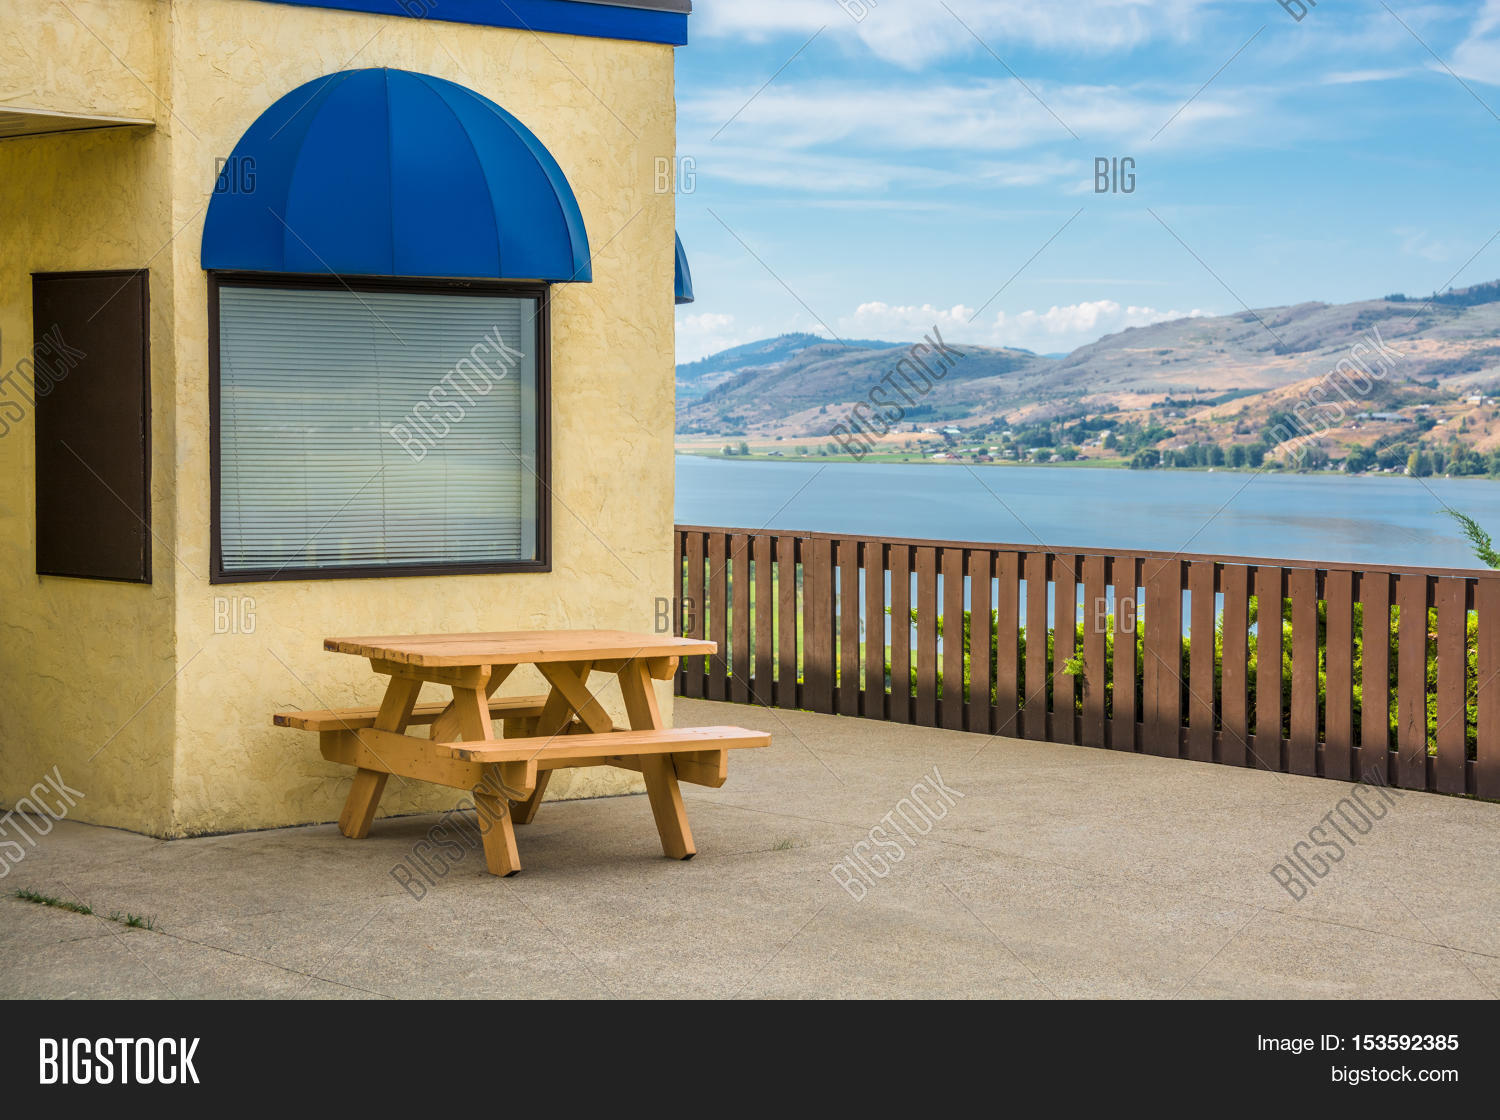 Cafe area with wooden table on Okanagan lake shore  Table and